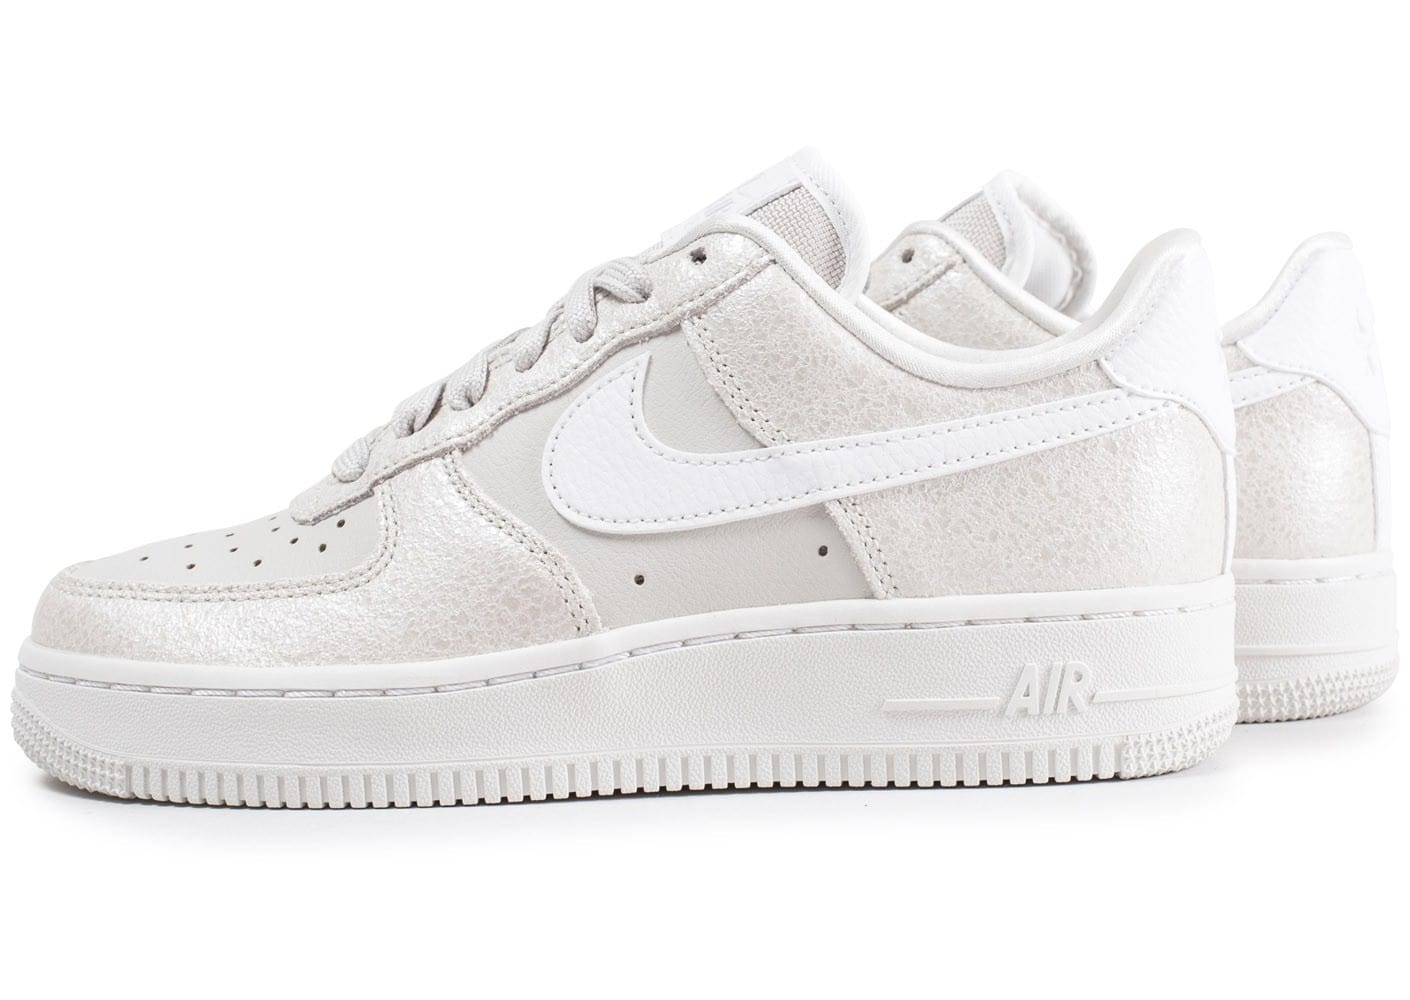 prix le plus bas 74431 d99a4 new style nike air force 1 low premium 6bde4 460c3